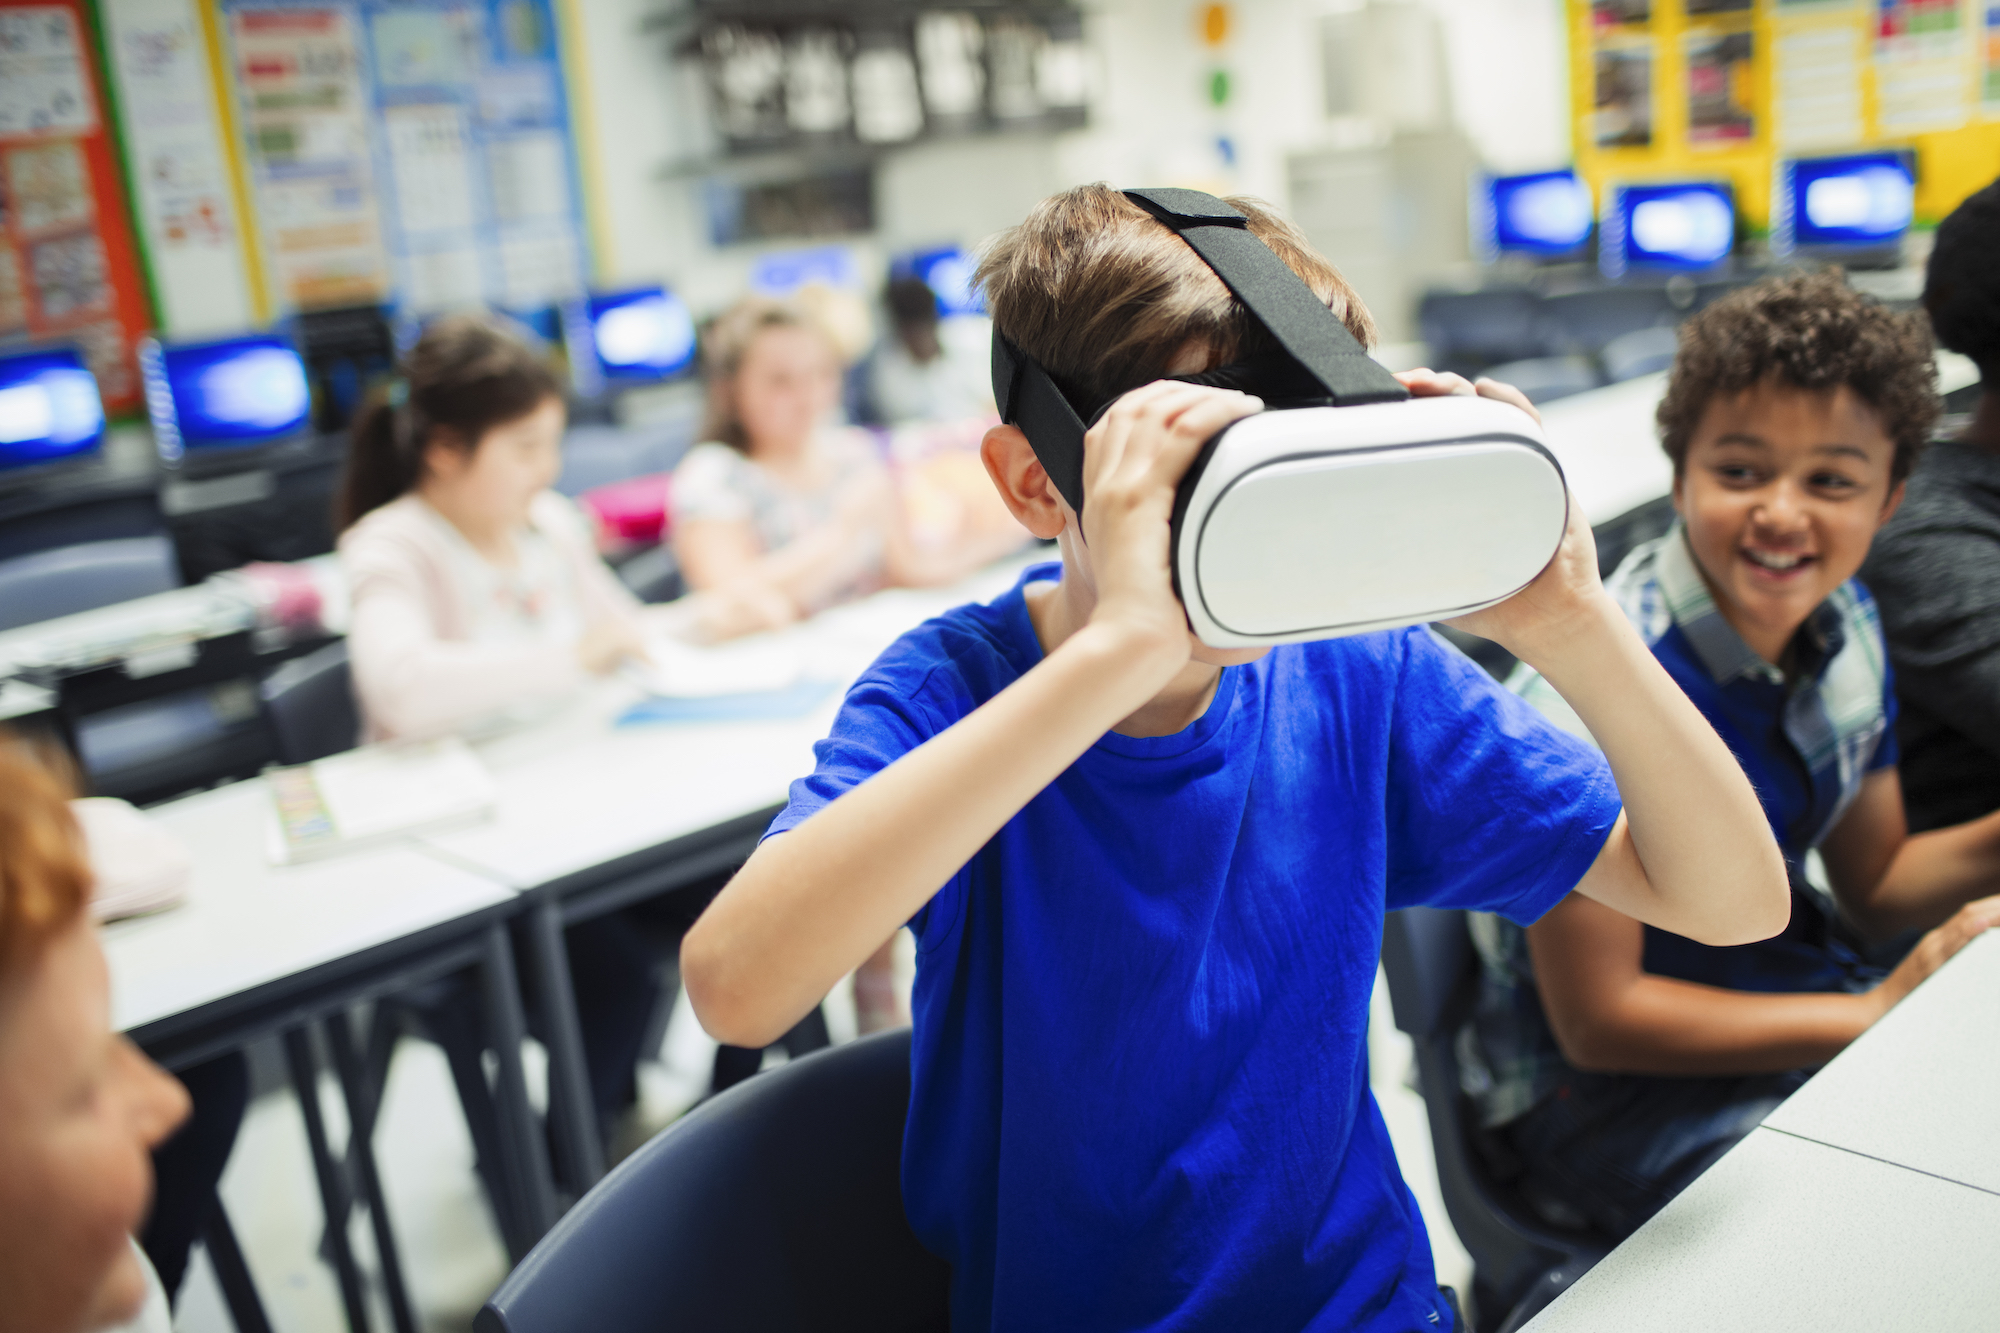 Using virtual reality to help students with disabilities